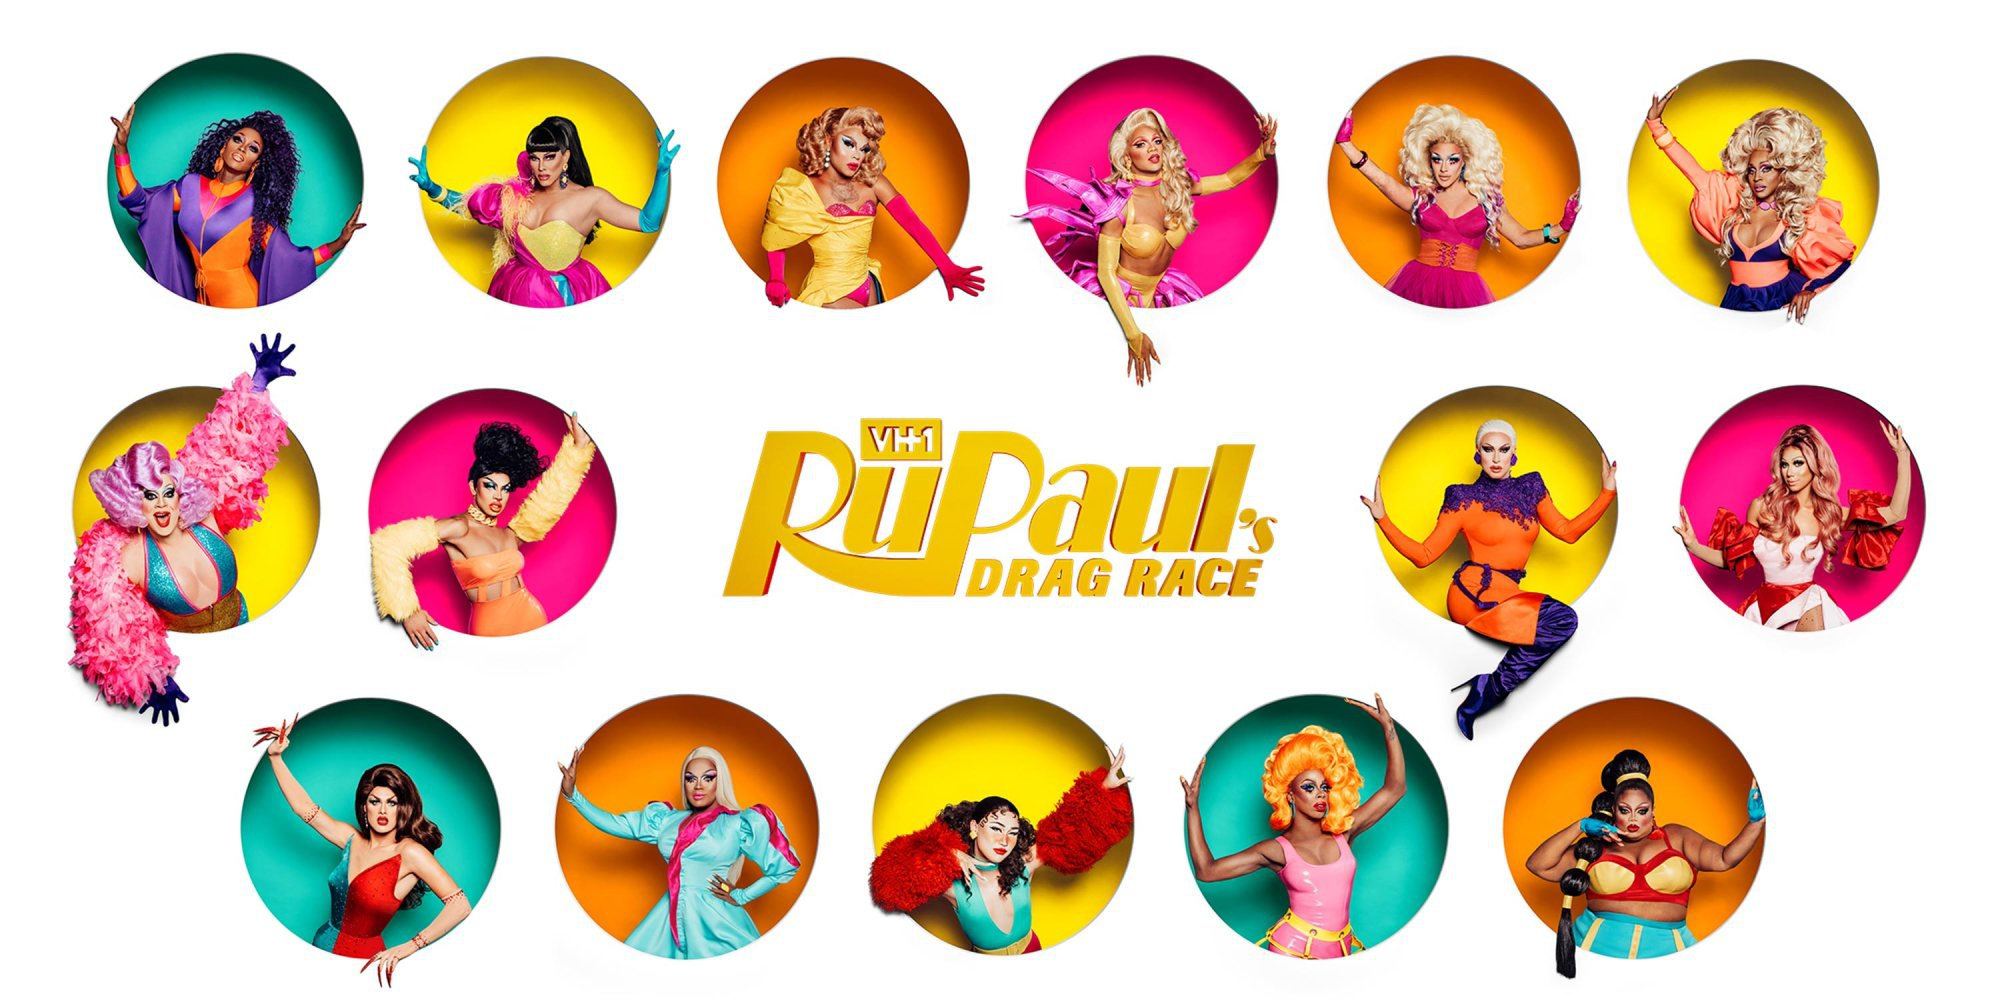 When is the Drag Race season 11 final?